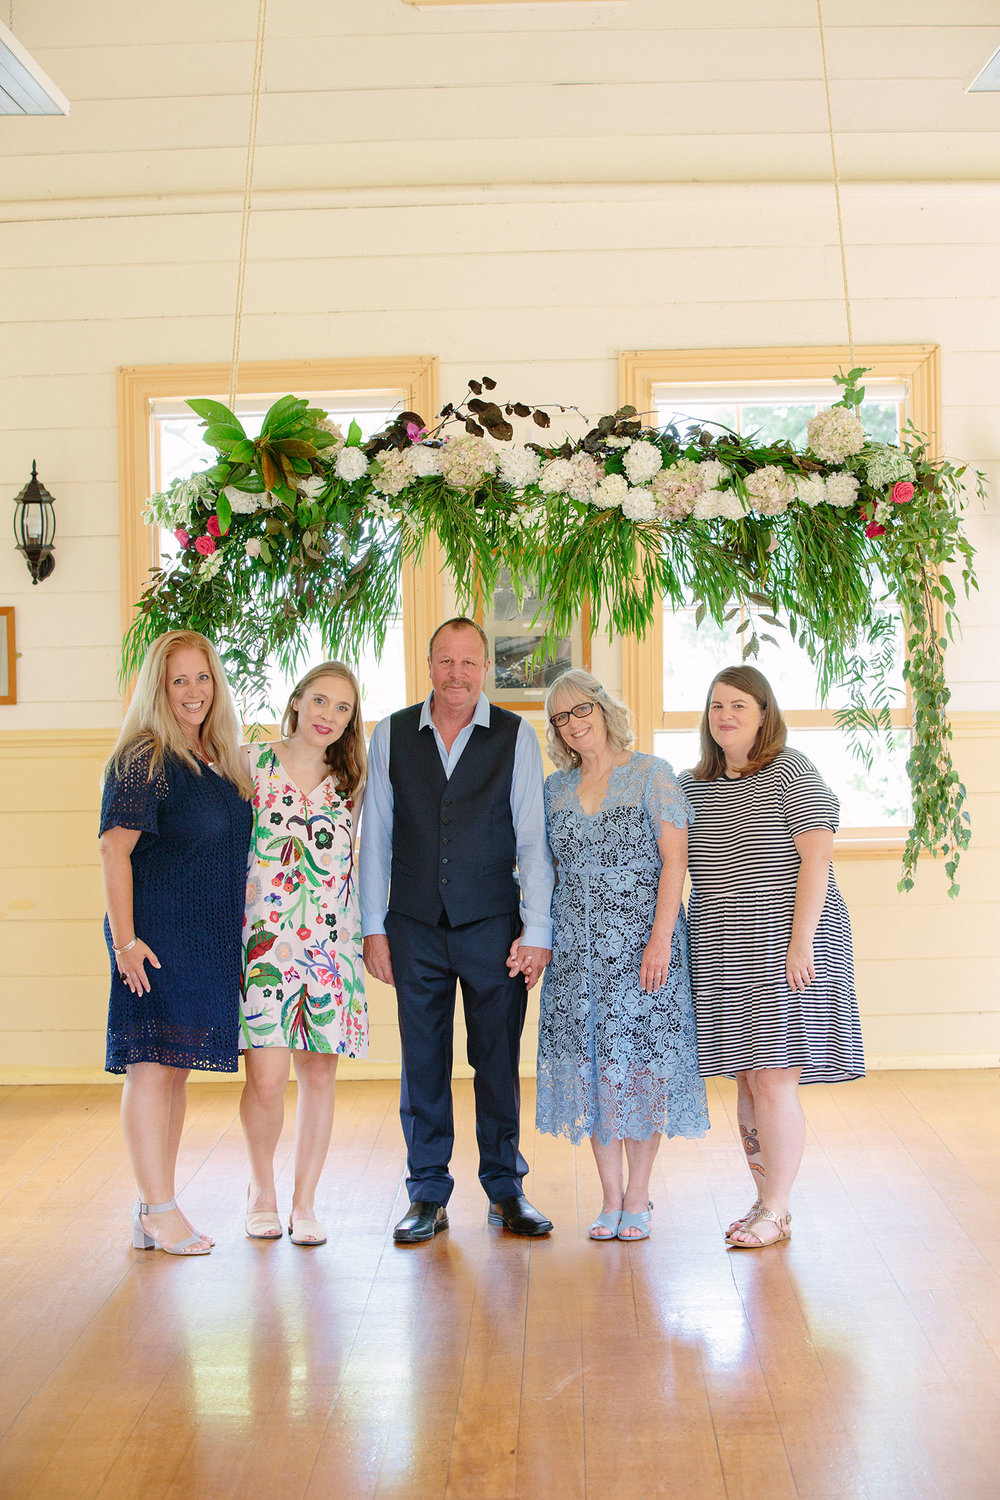 Auckland-summer-pop-up-wedding - Copy.jpg